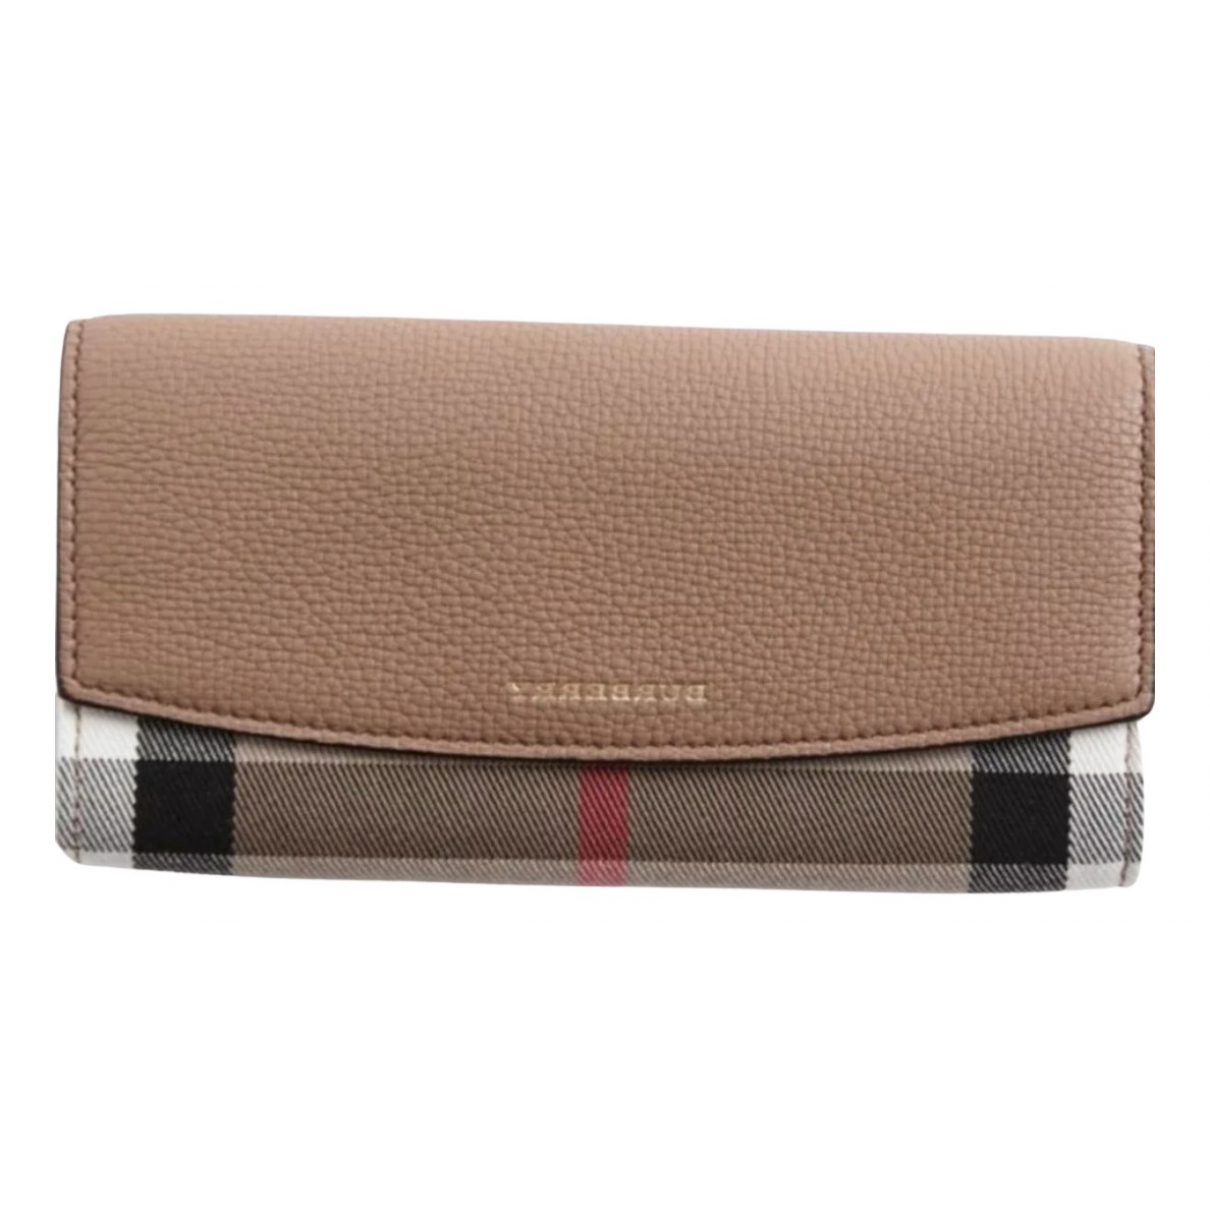 Burberry N Multicolour Leather wallet for Women N